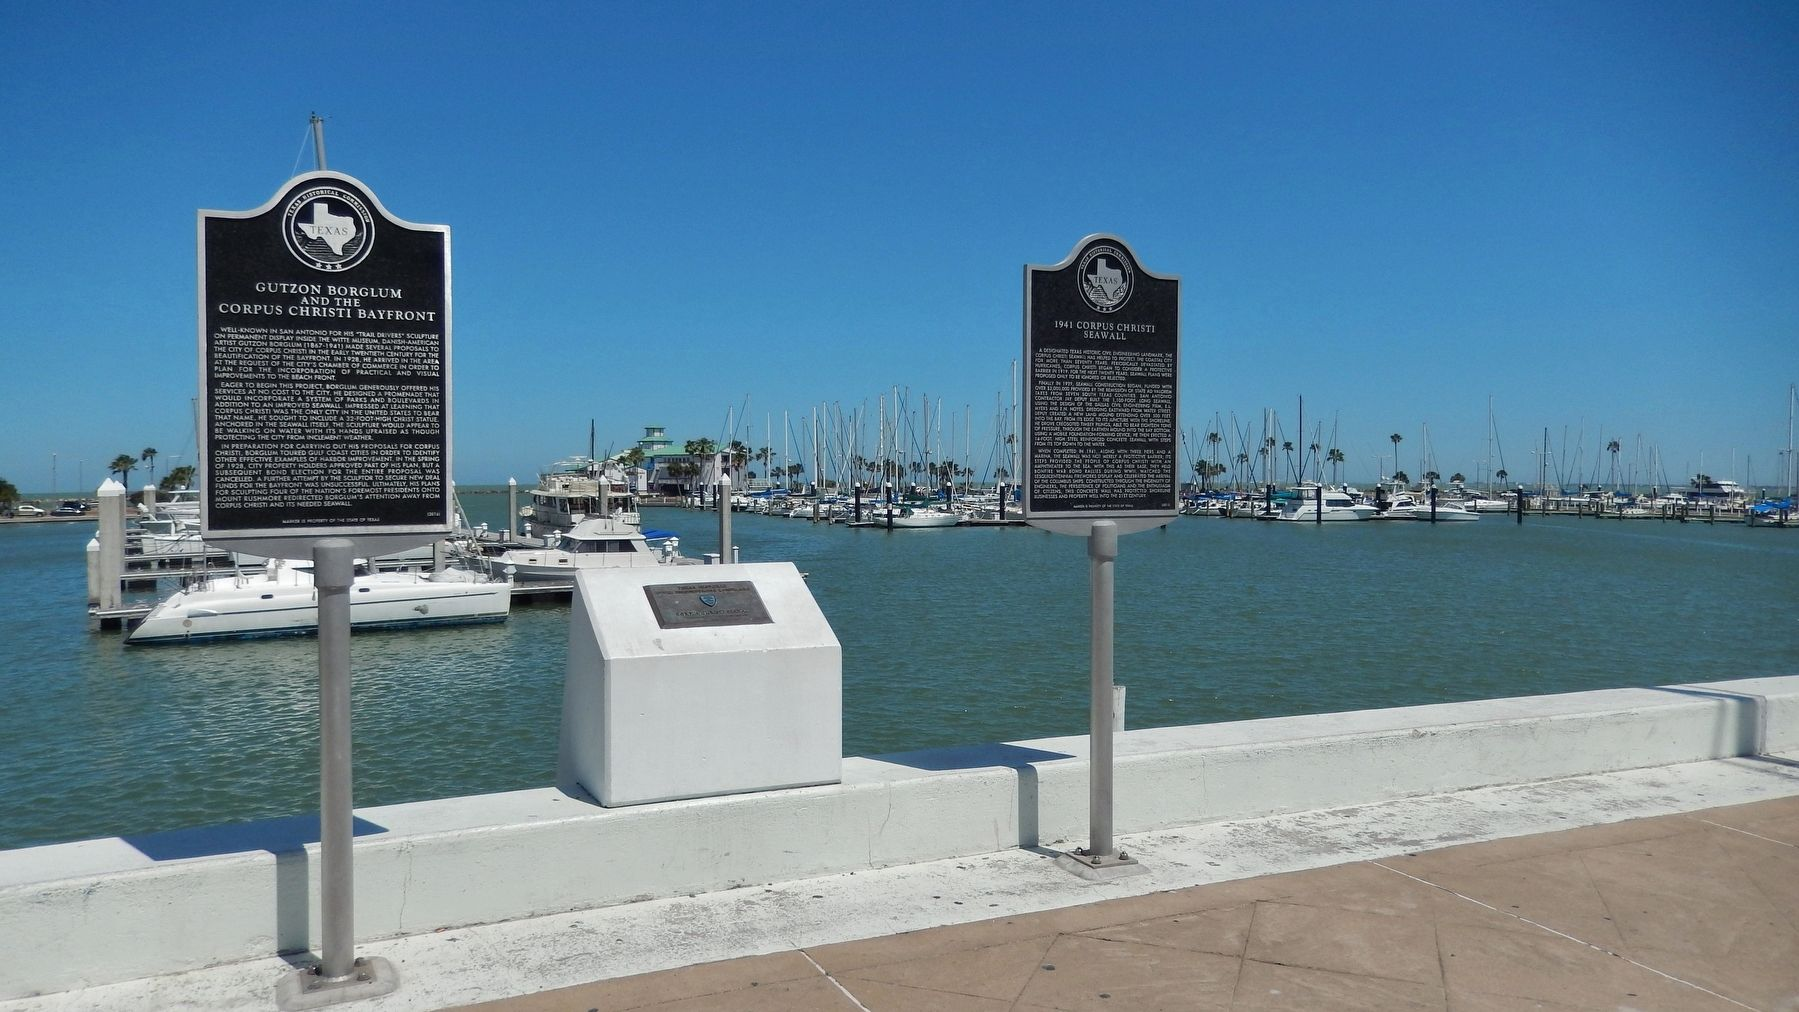 Gutzon Borglum Corpus Christi Bayfront Marker (<i>wide view; showing adjacent marker on right</i>) image. Click for full size.